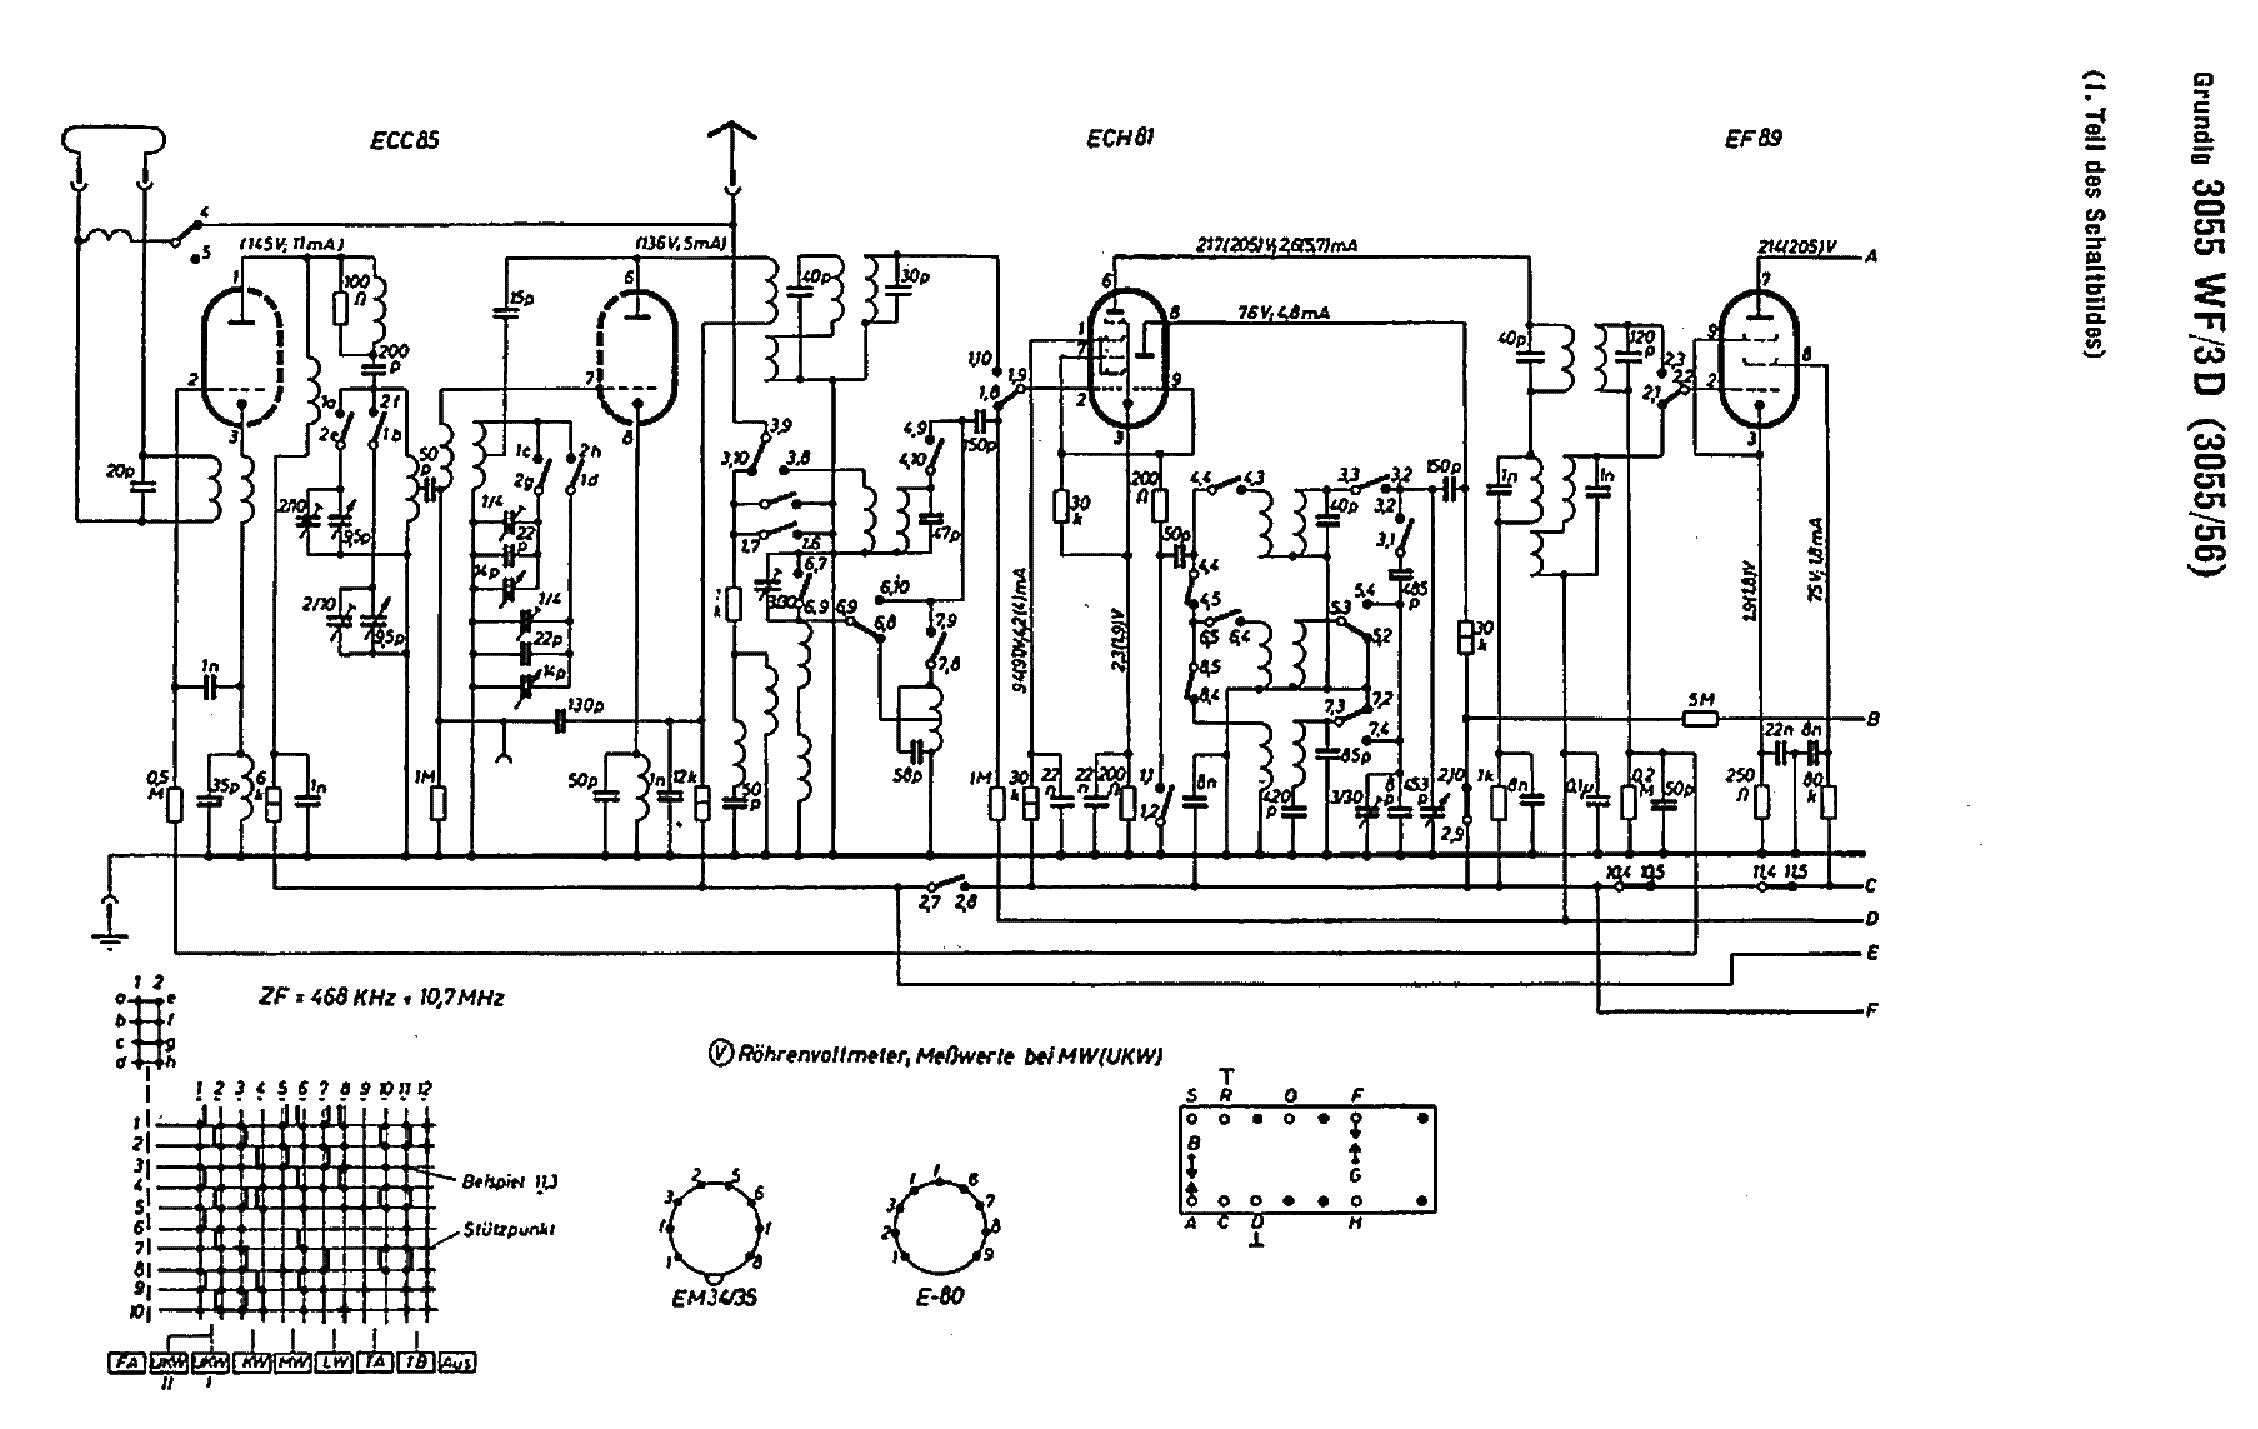 philco car radio schematic panasonic car radio schematic elsavadorla